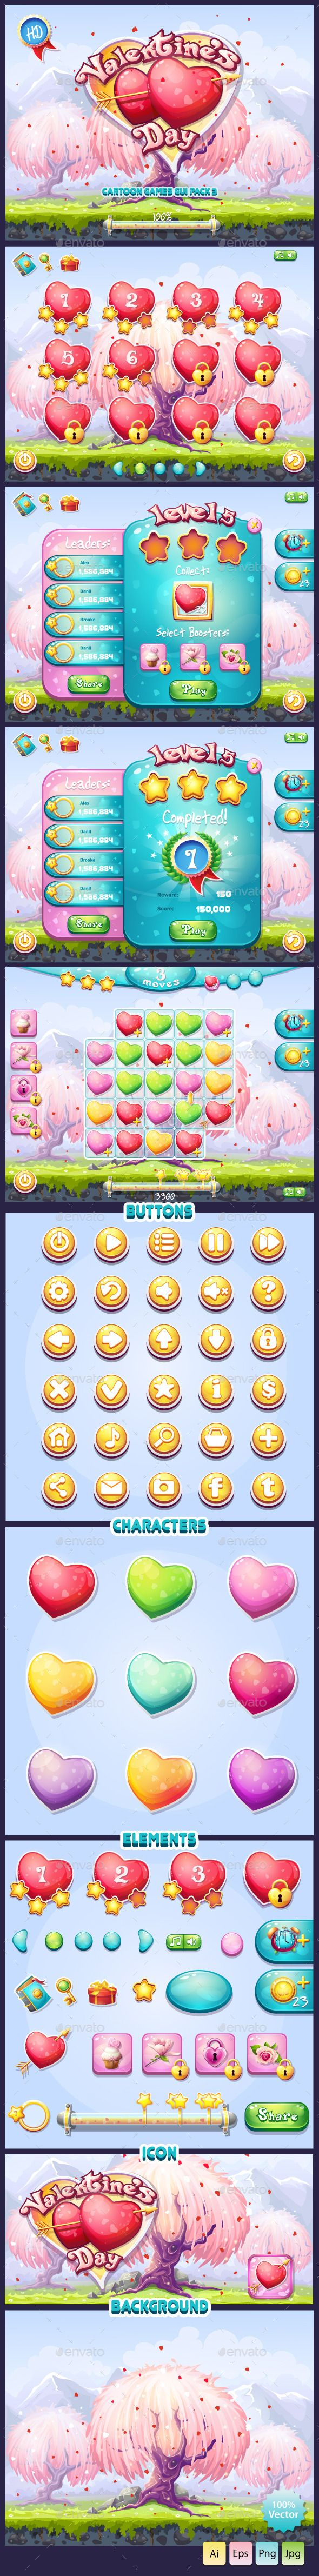 GUI Valentine's Day - User Interfaces #Game #Assets | Download…